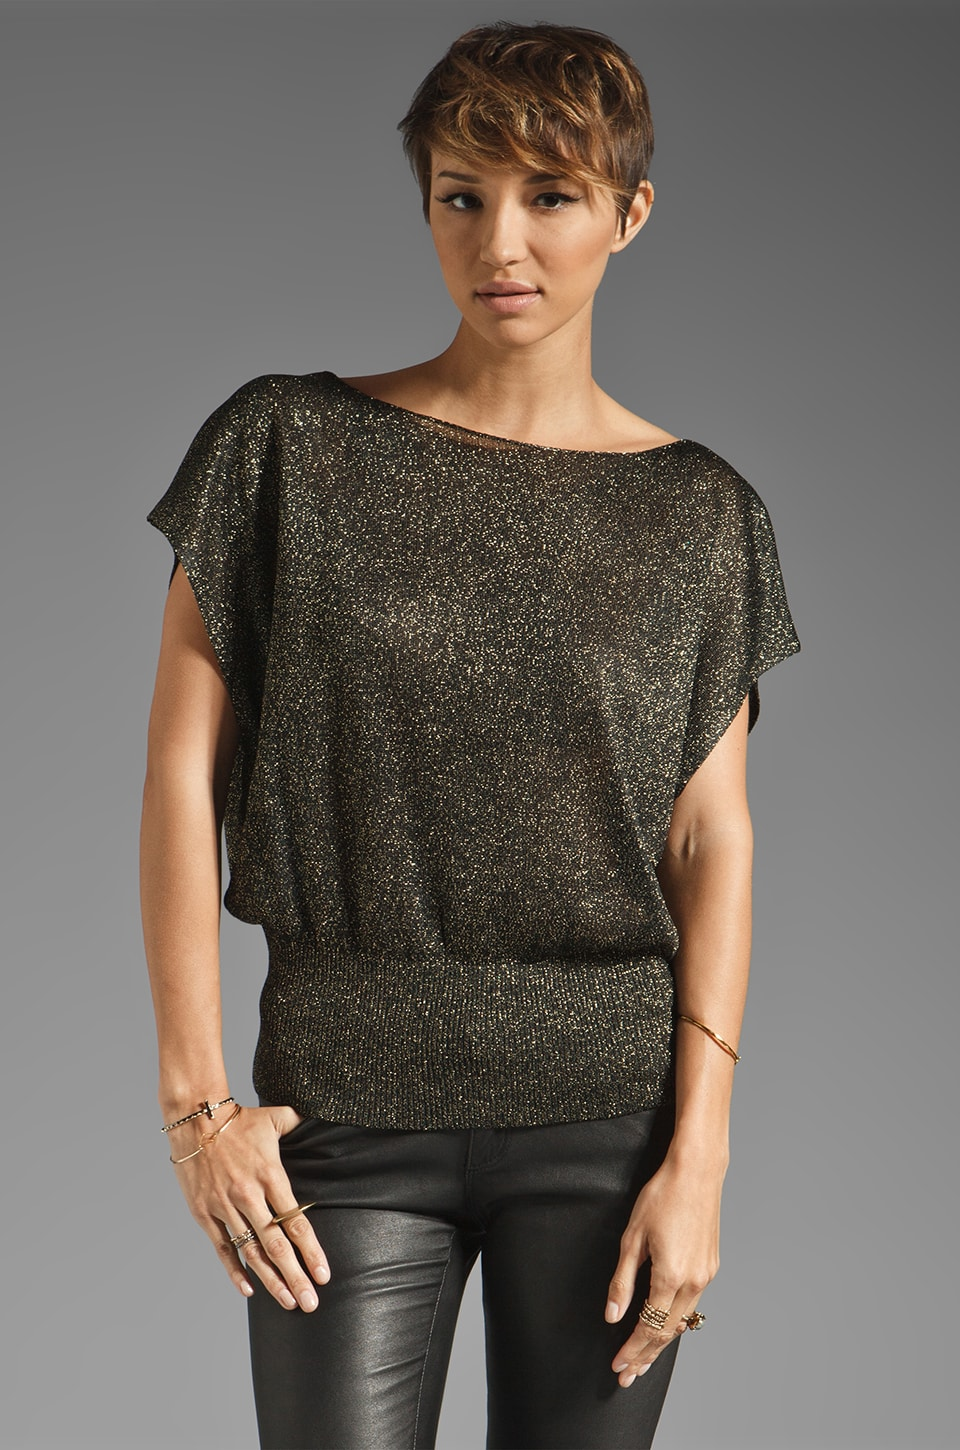 Alice + Olivia Celie Metallic Sparkly Pullover in Black/Gold